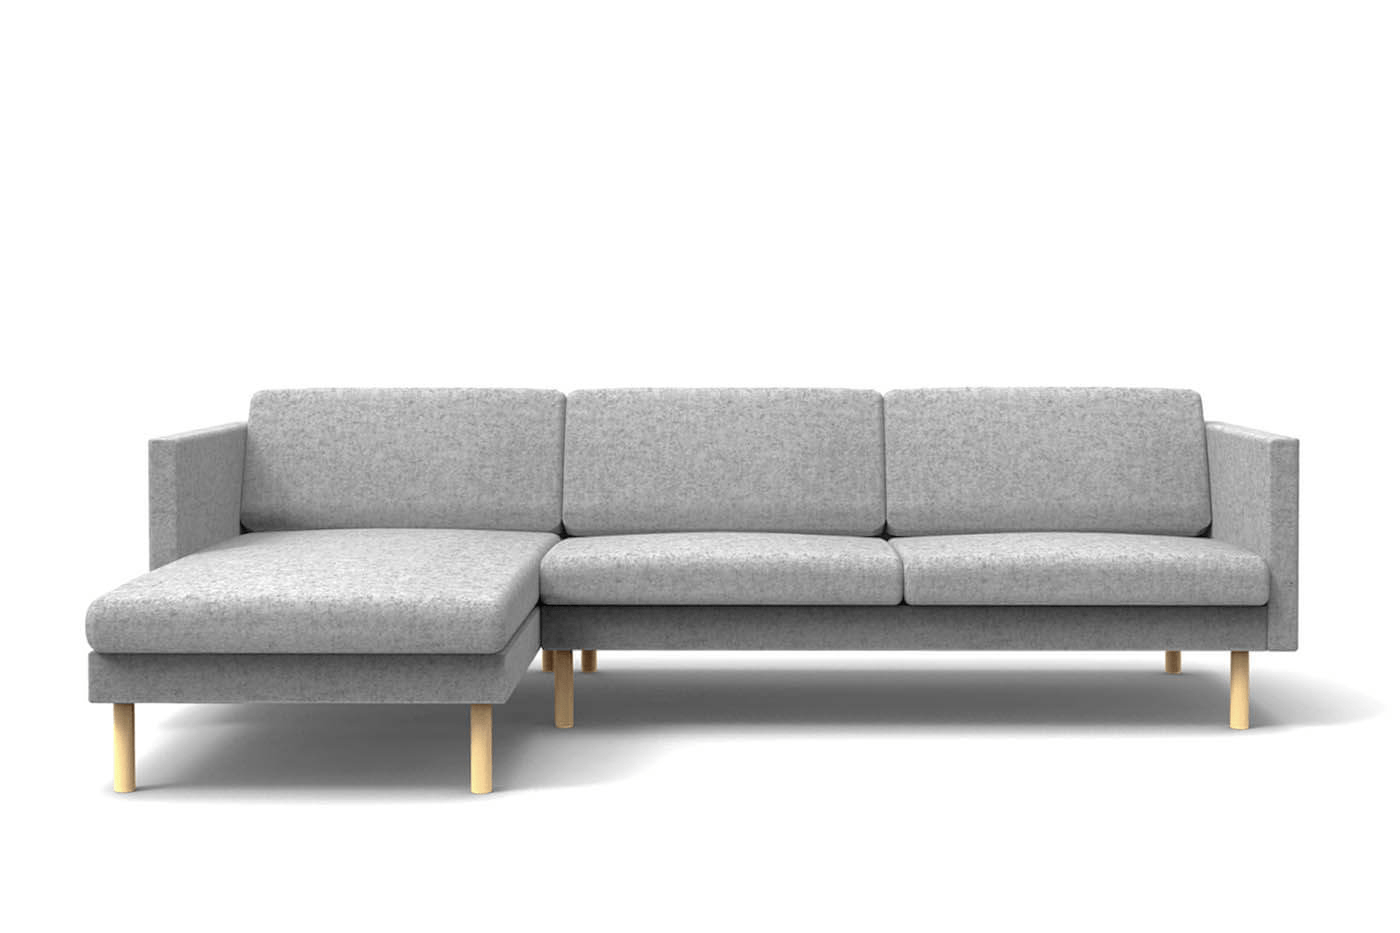 Sofa Chaise Lounge Chaise Lounges Thesofa